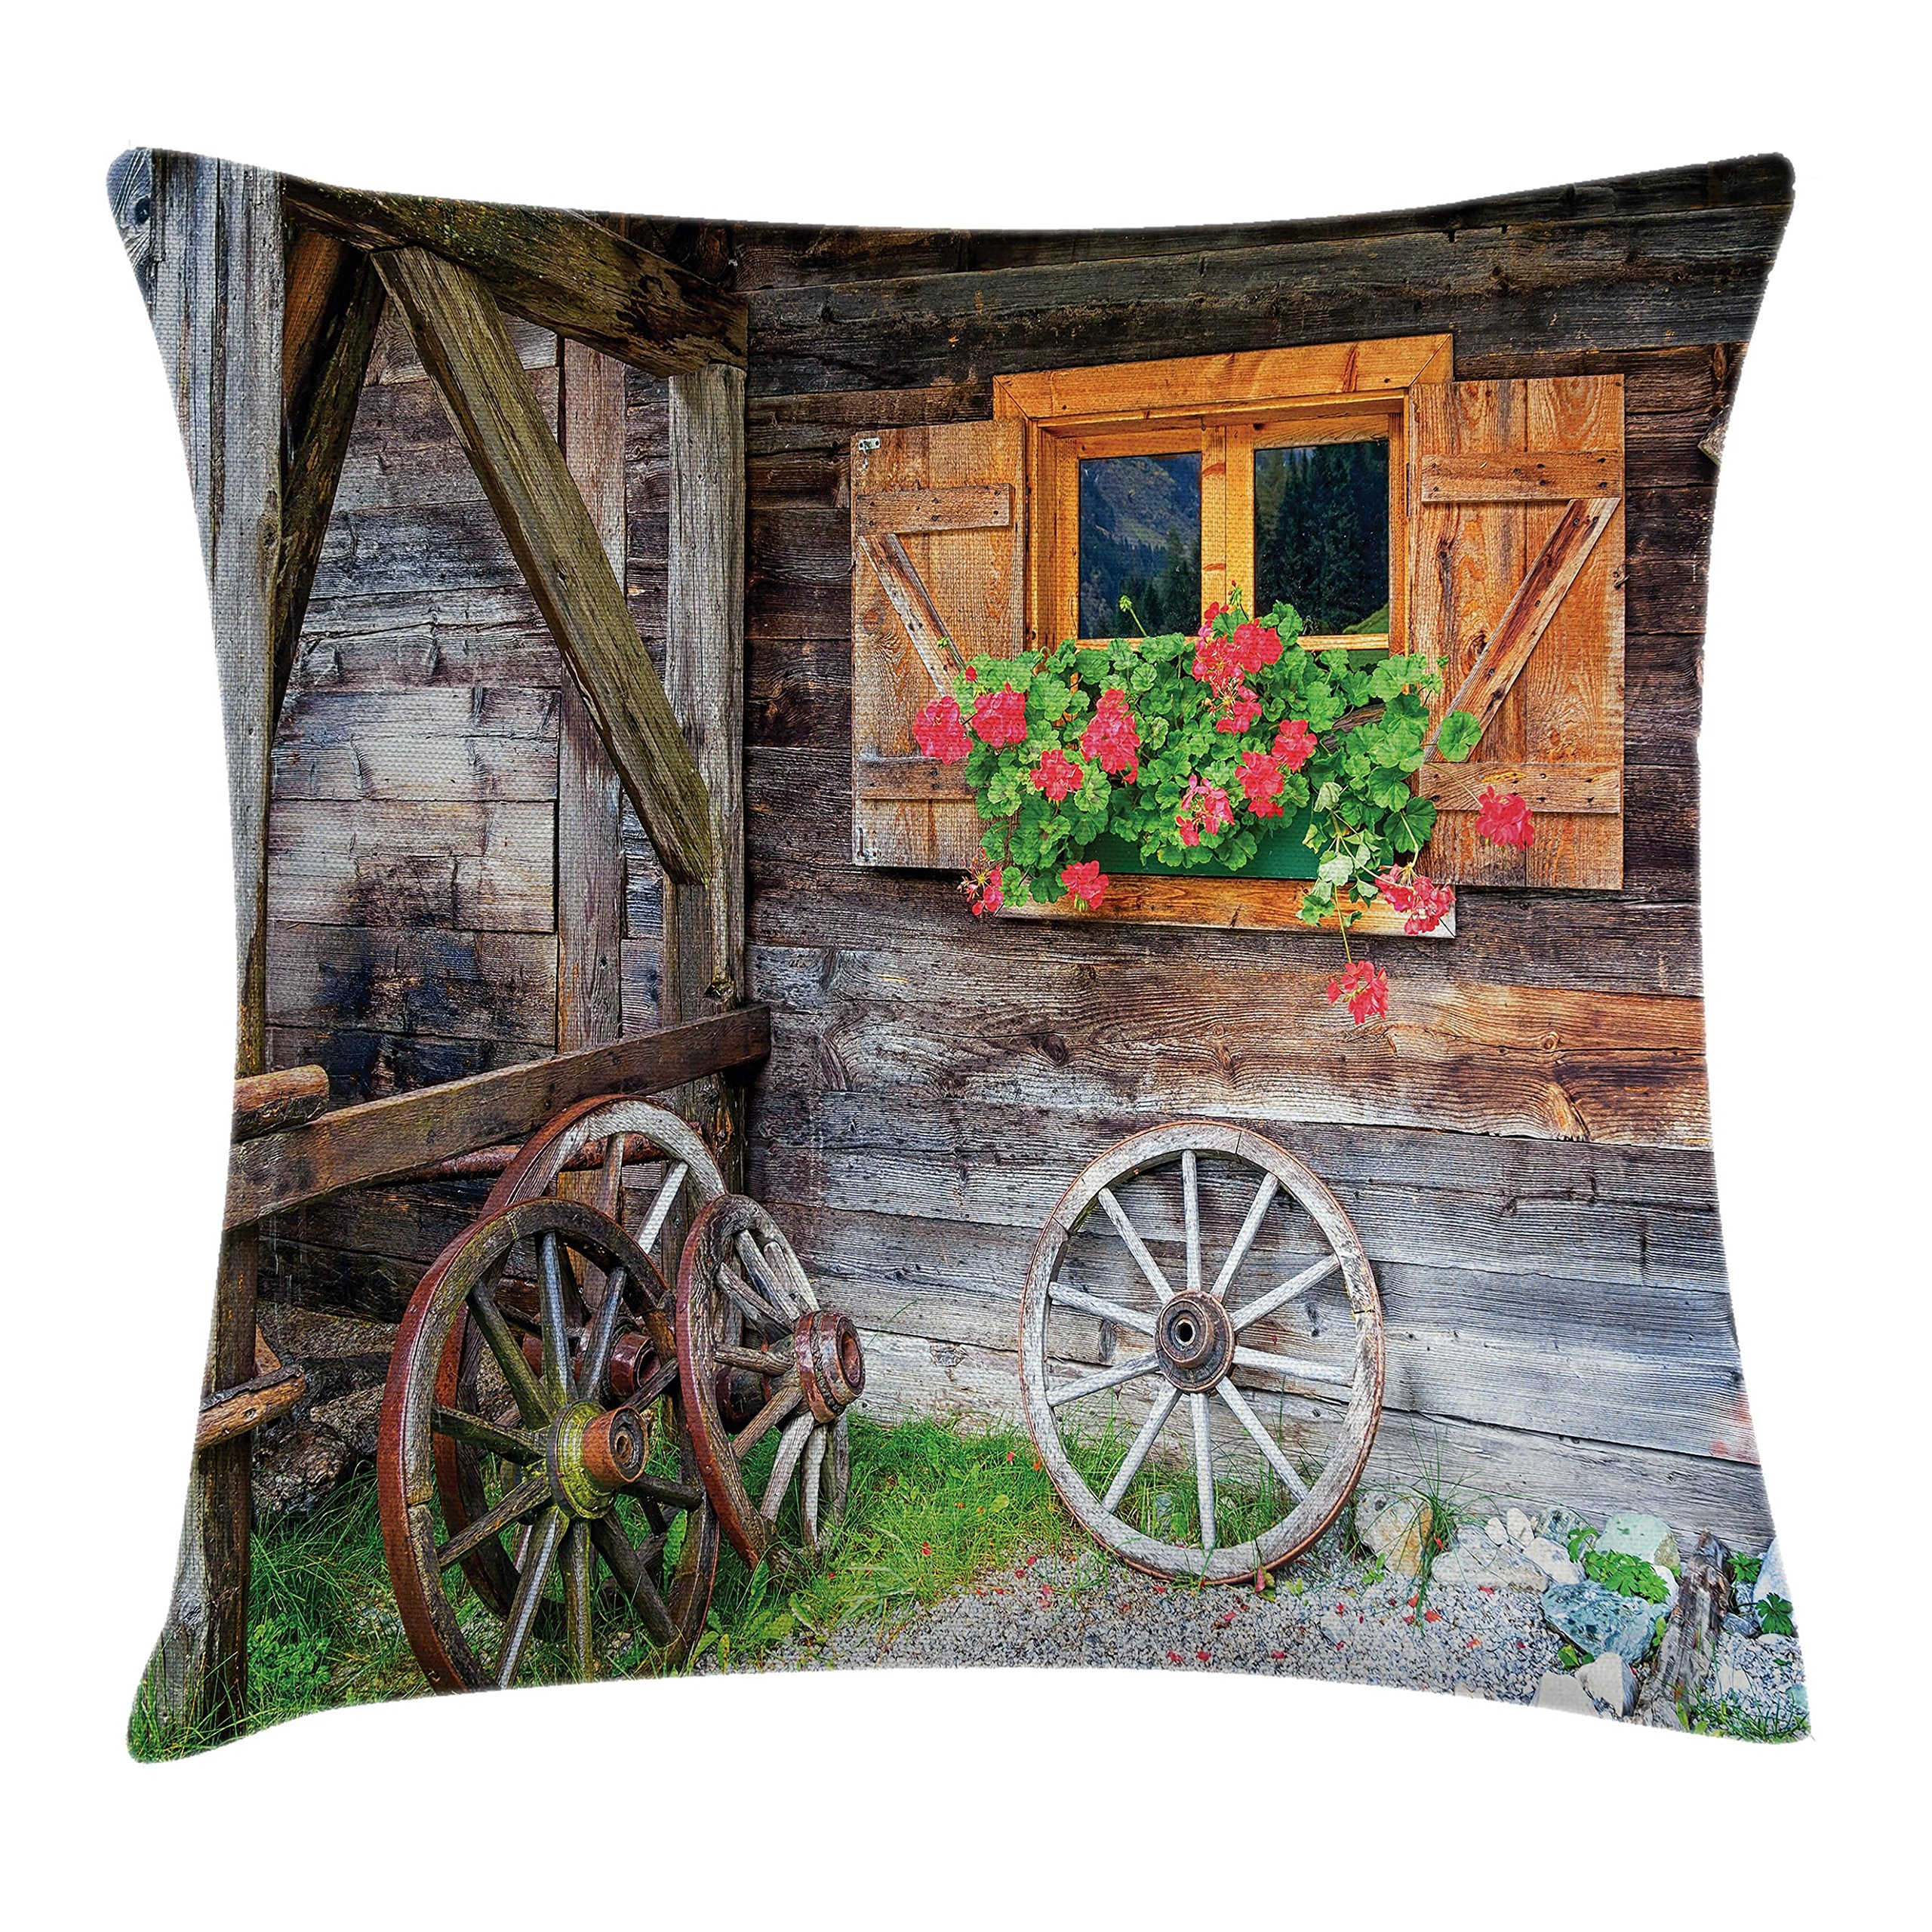 Ambesonne Shutters Decor Throw Pillow Cushion Cover, Weathered Old Window with Flowers in Pot Wheels Farmhouse Rural Scene, Decorative Square Accent Pillow Case, 24 X 24 Inches, Brown Green Red